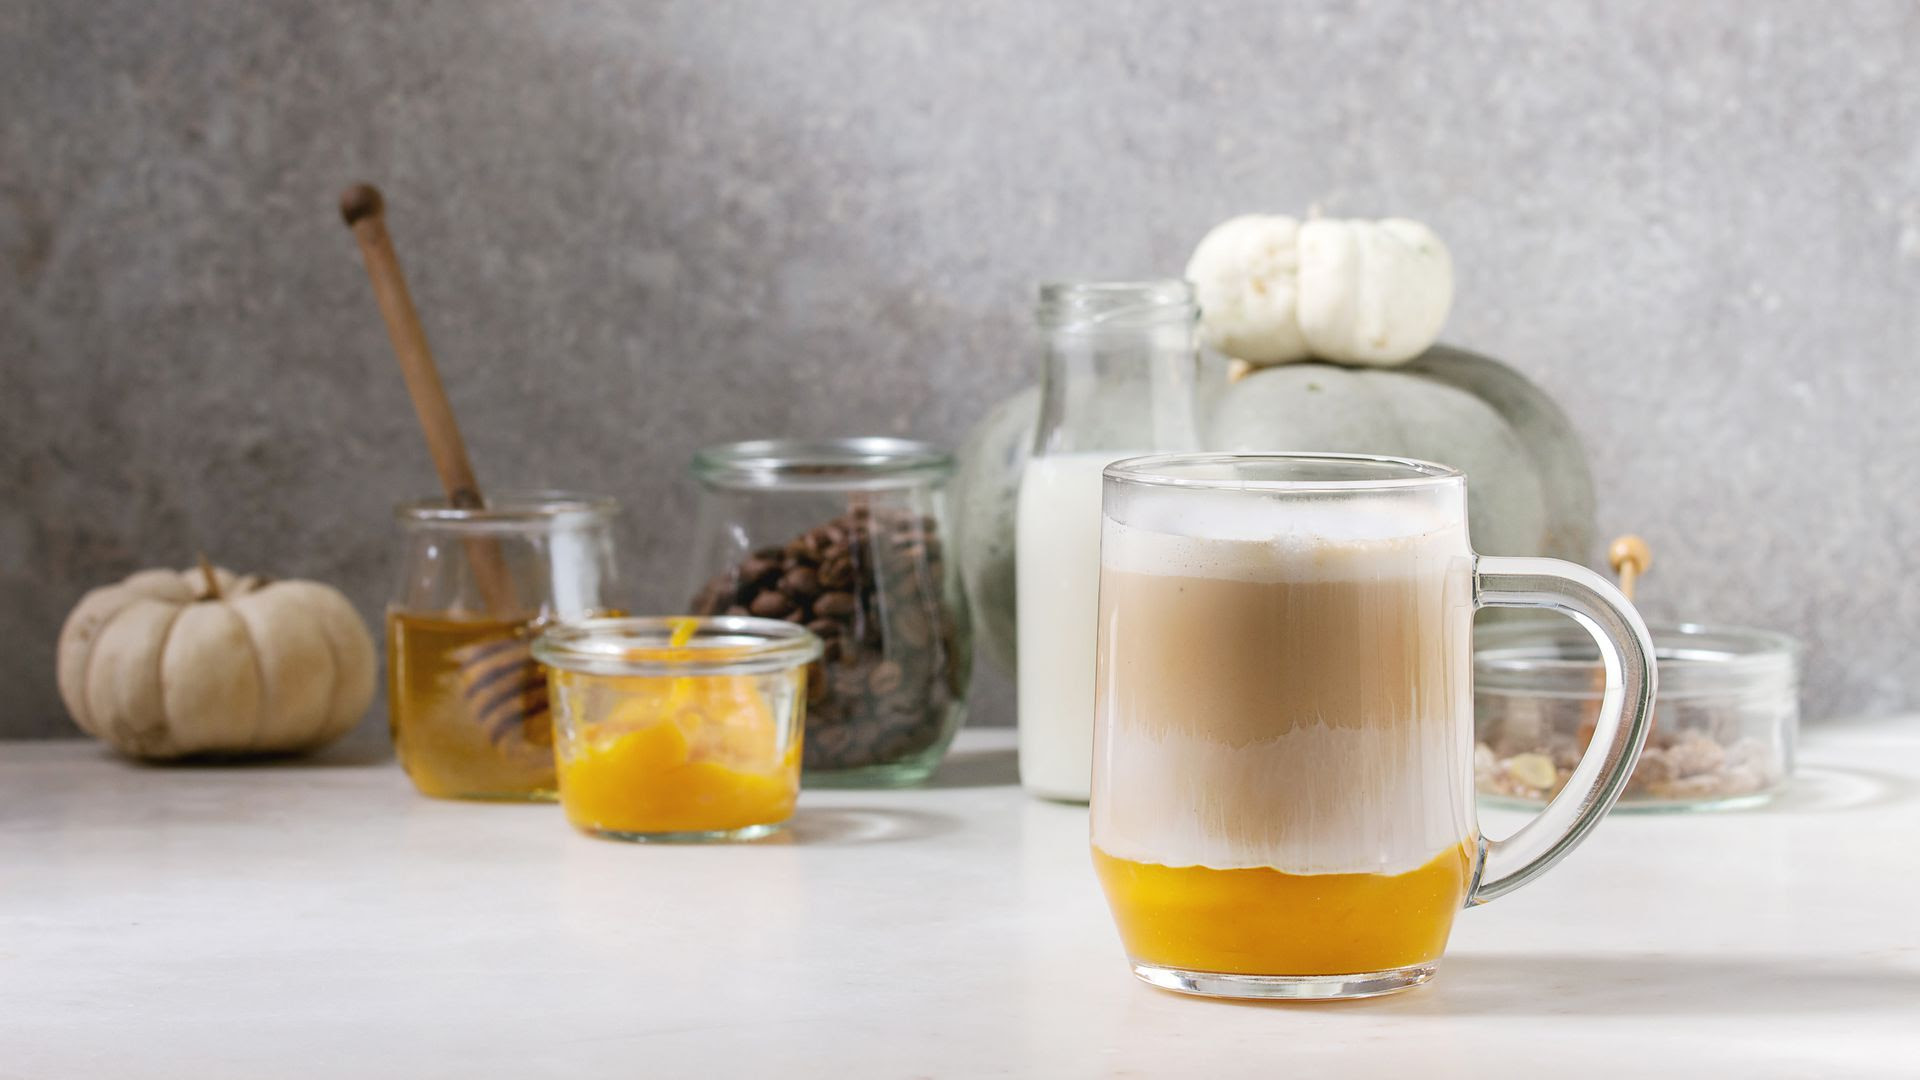 A glass of pumpkin spice latte together with some of its ingredients.